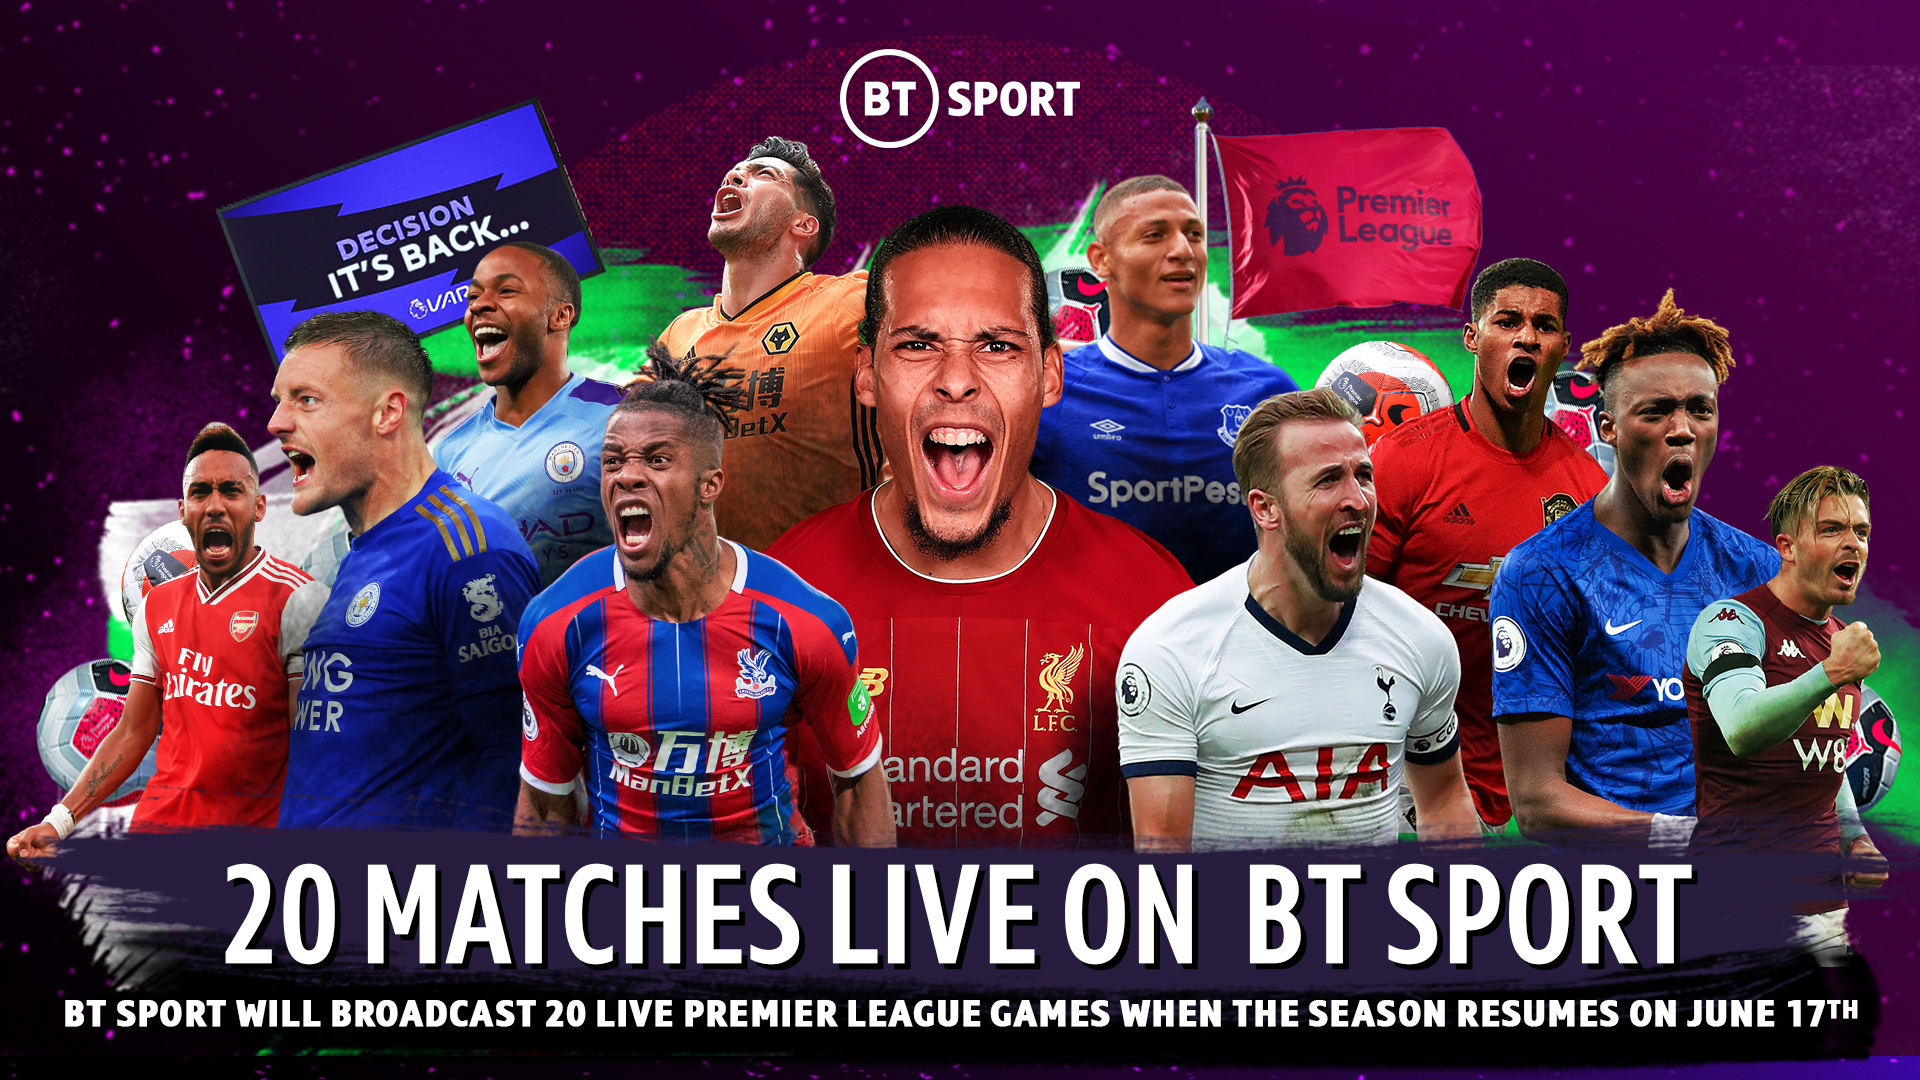 Premier League: Watch all the games for half the price on BT TV | BT Sport